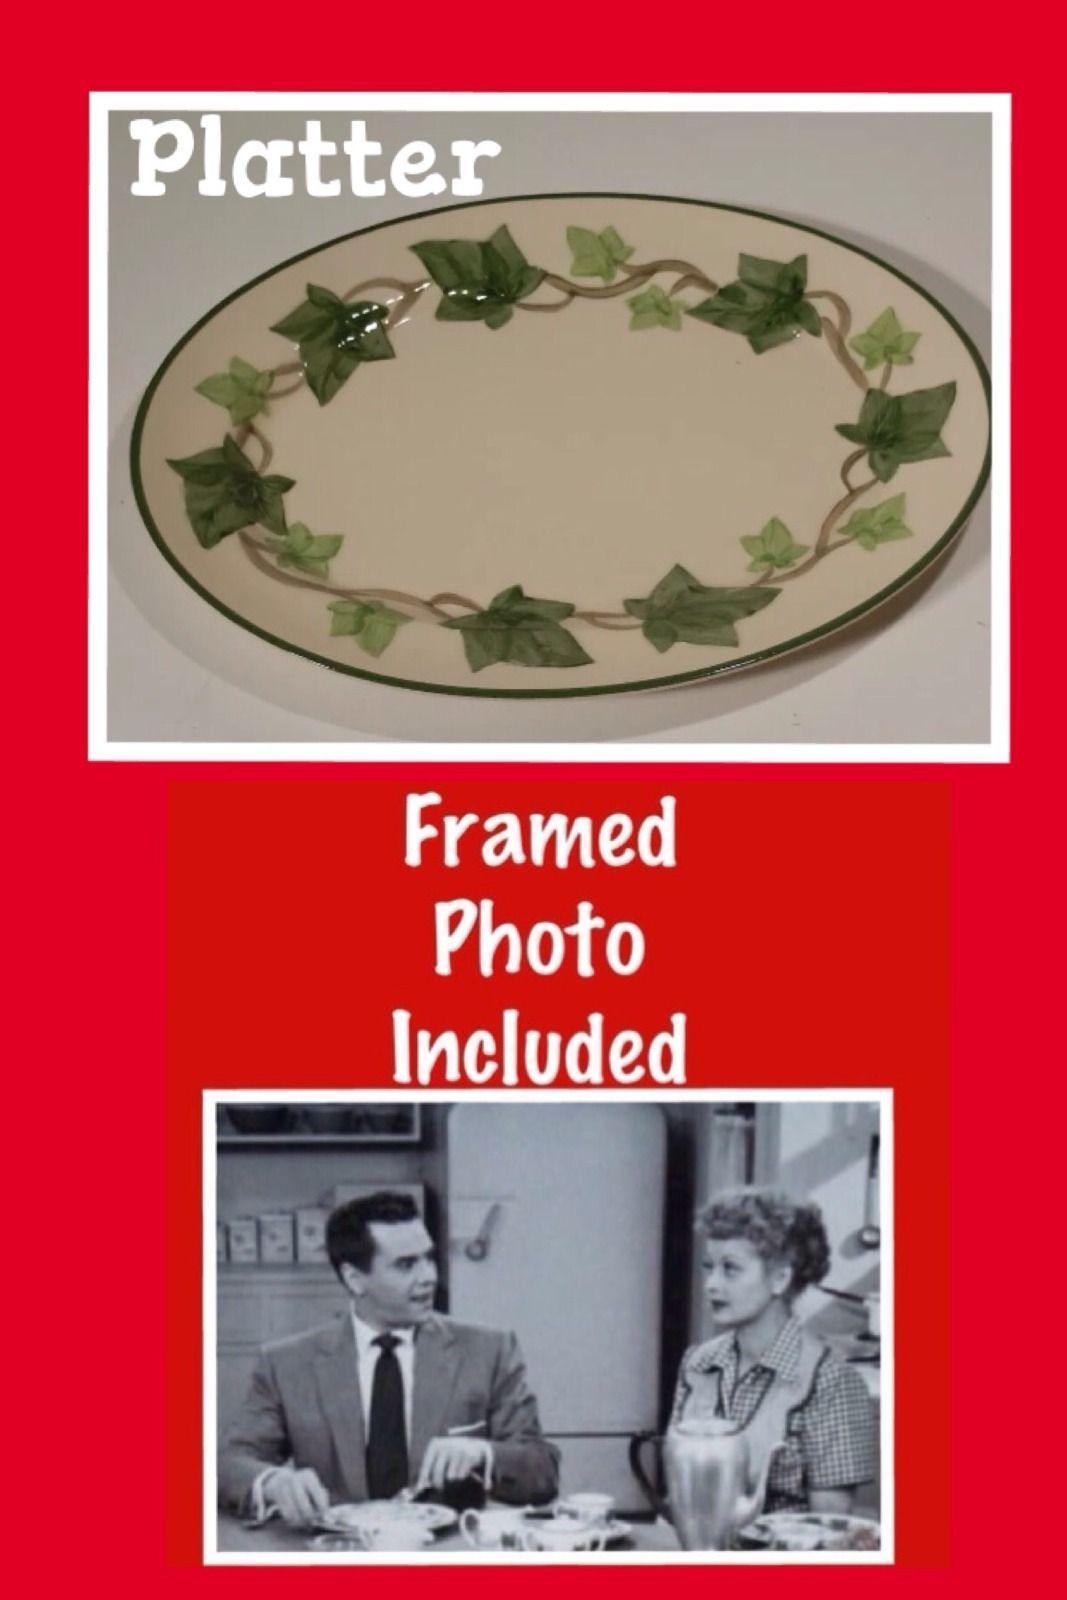 I Love Lucy Vintage Platter Franciscan Ivy China Prop Lucille Ball Plate Serving | eBay  sc 1 st  Pinterest & I Love Lucy Vintage Platter Franciscan Ivy China Prop Lucille Ball ...